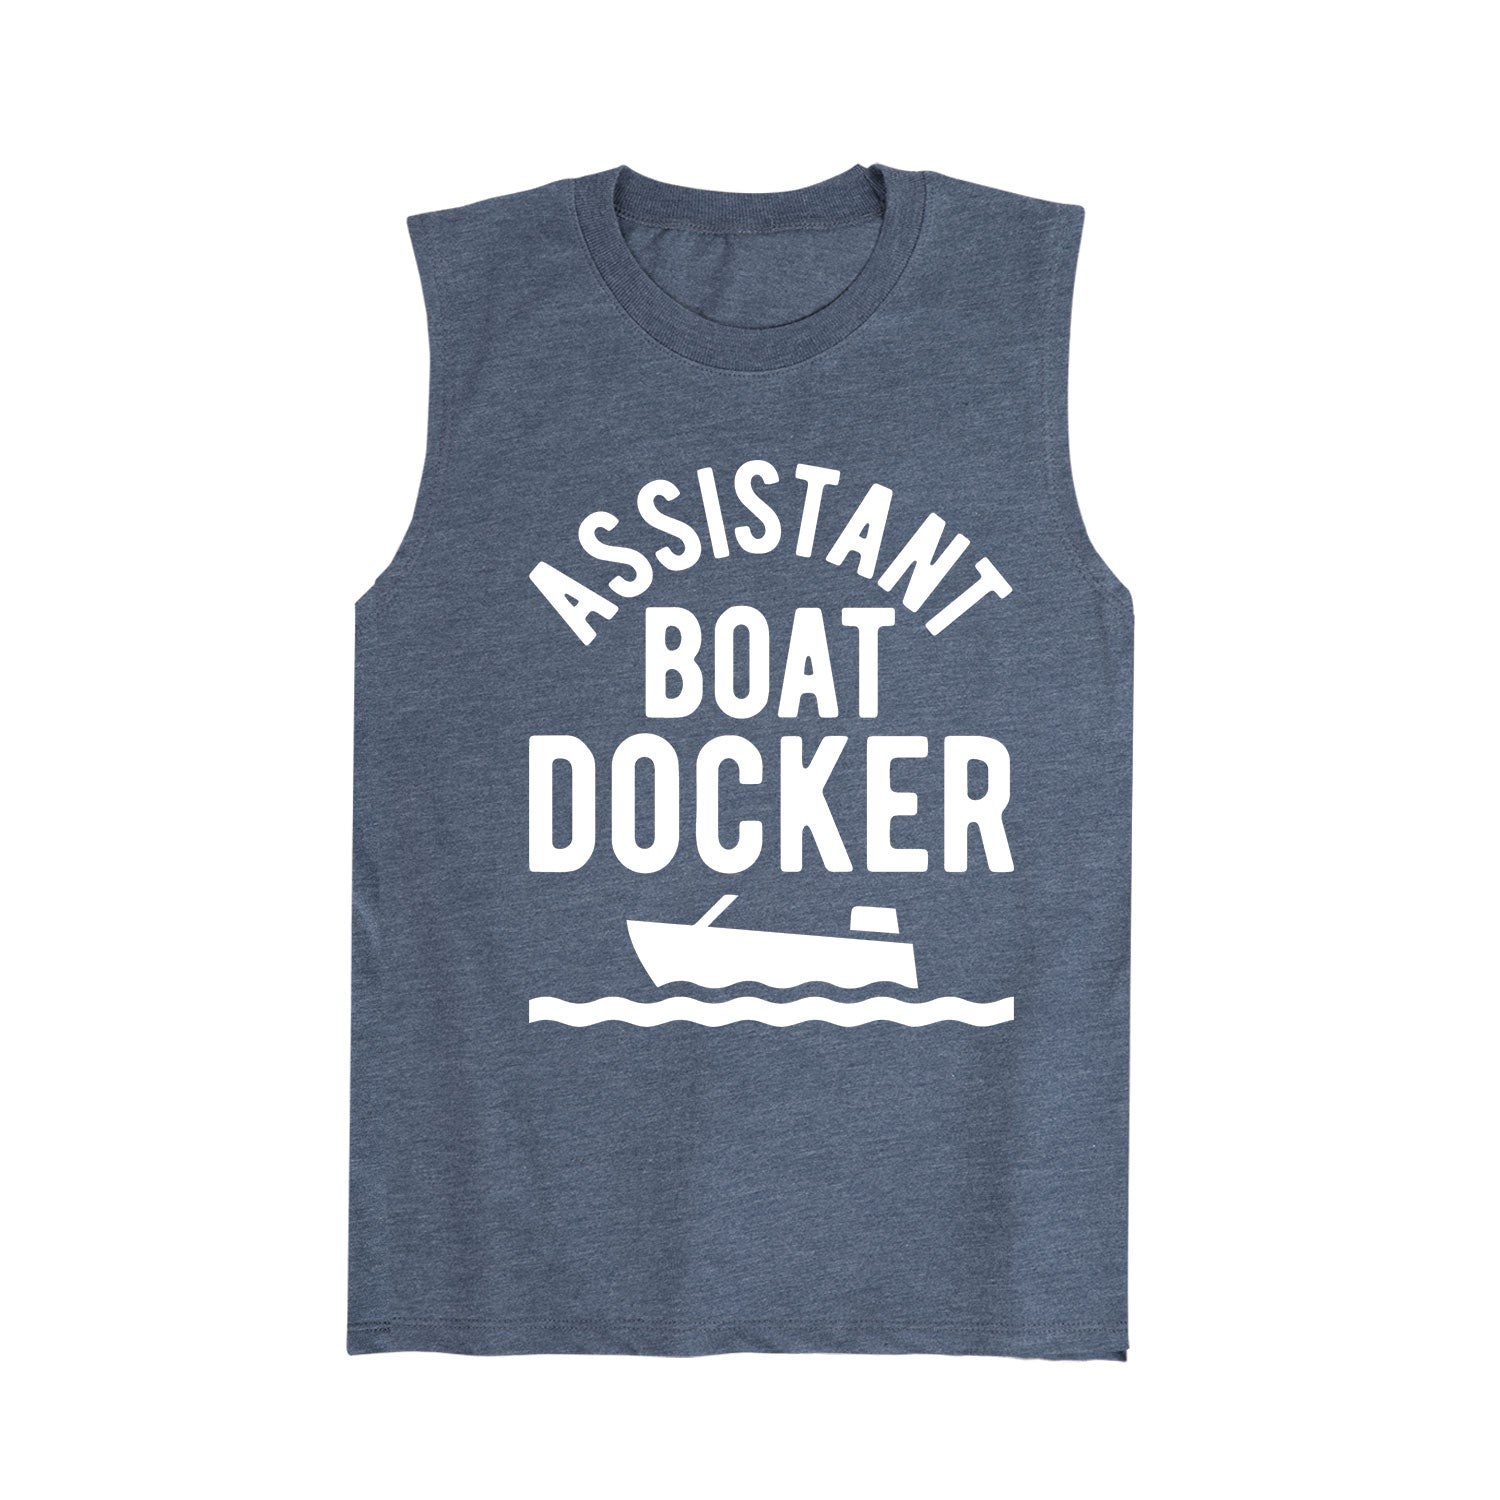 Assistant Boat Docker - Youth Tank Top